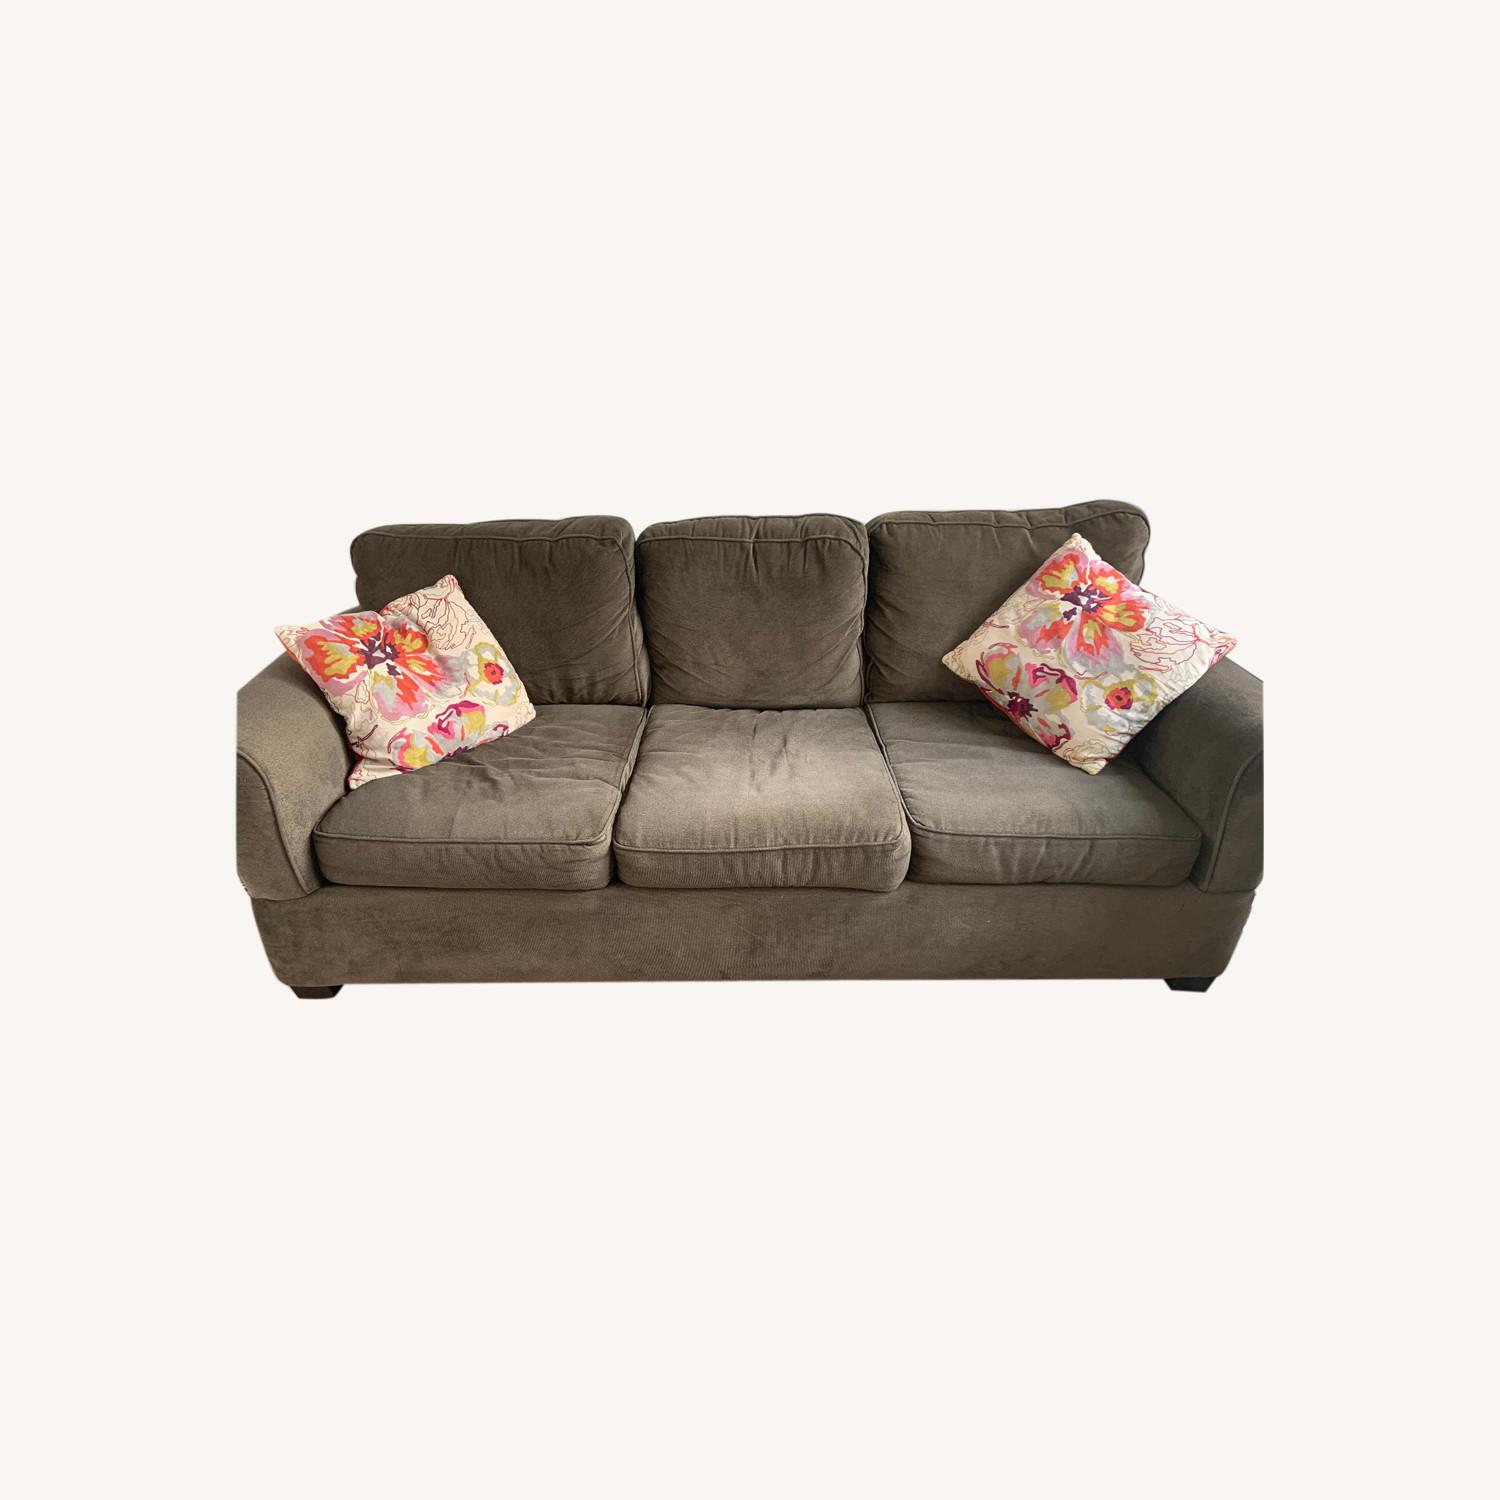 Jennifer Convertibles Comfy 3-Seater Couch - image-0